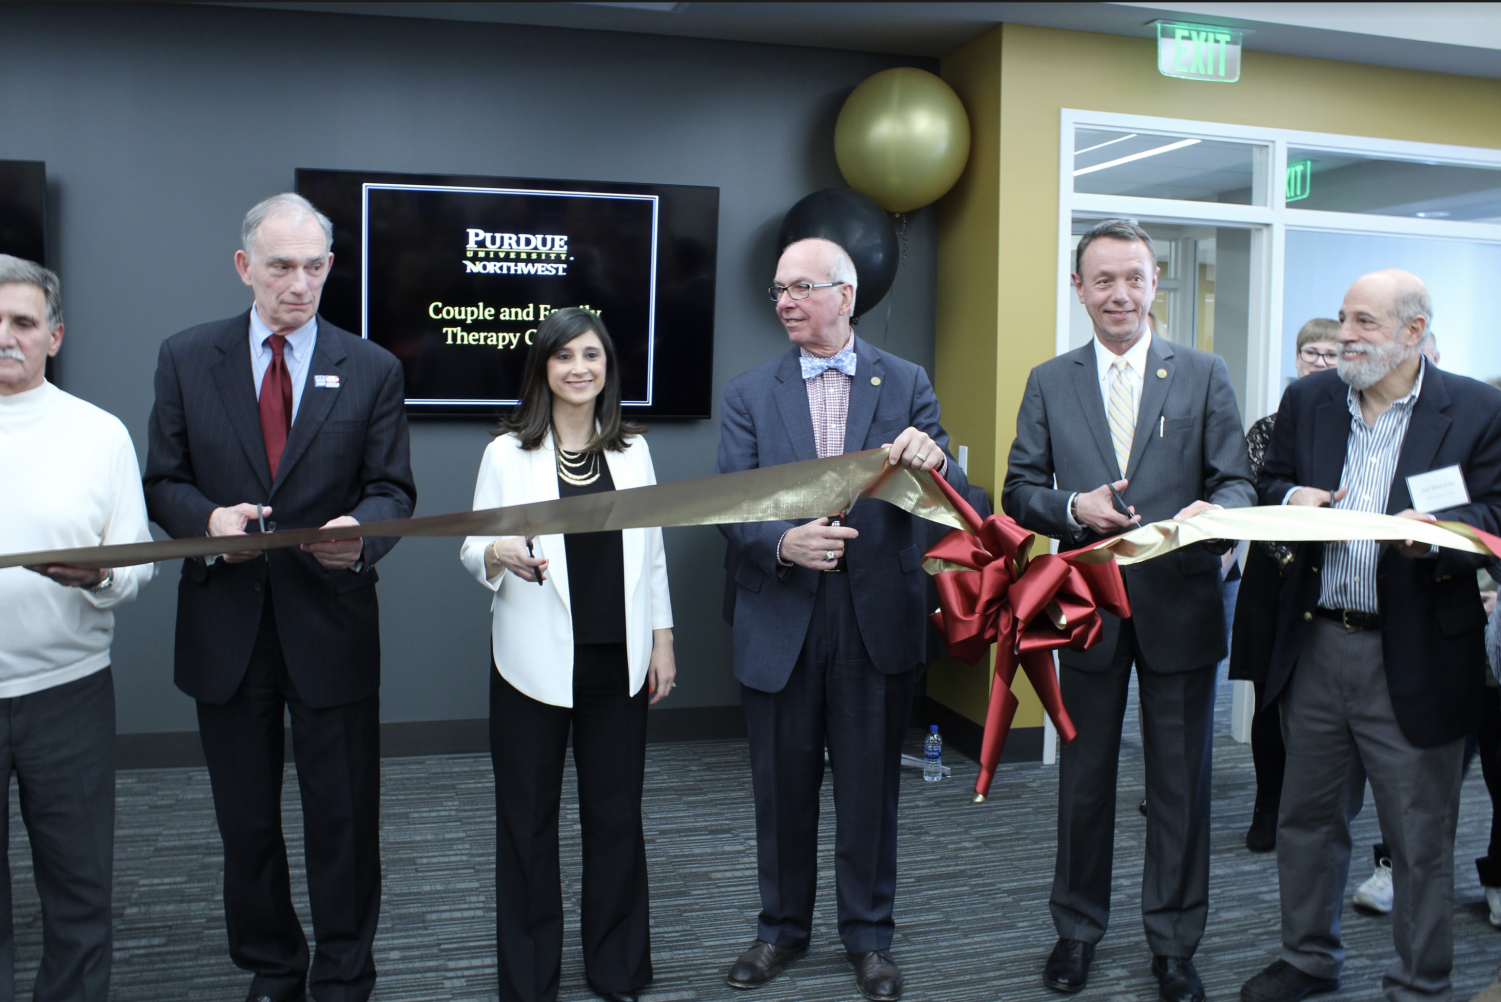 U. S. Rep. Pete Visclosky, Z. Seda Gulvas, interim director of the Couple and Family Center, Chancellor Thomas Keon and Provost Ralph Mueller cut the ribbon at the opening ceremony.